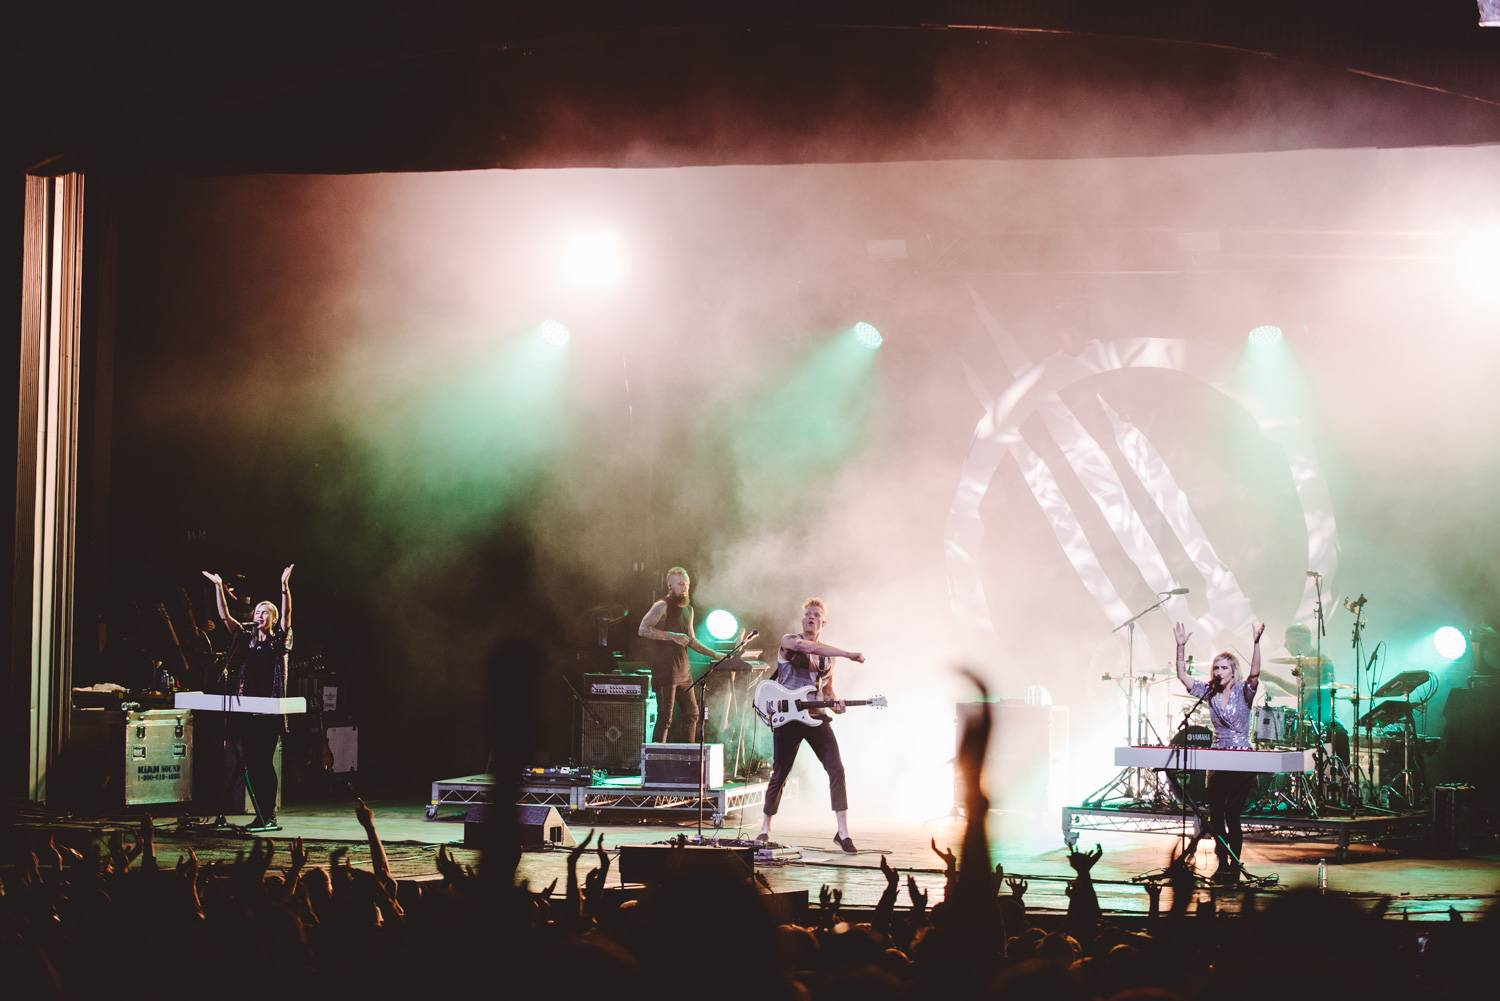 Mother Mother at Malkin Bowl, Vancouver, Sept 21 2019. Pavel Boiko photo.